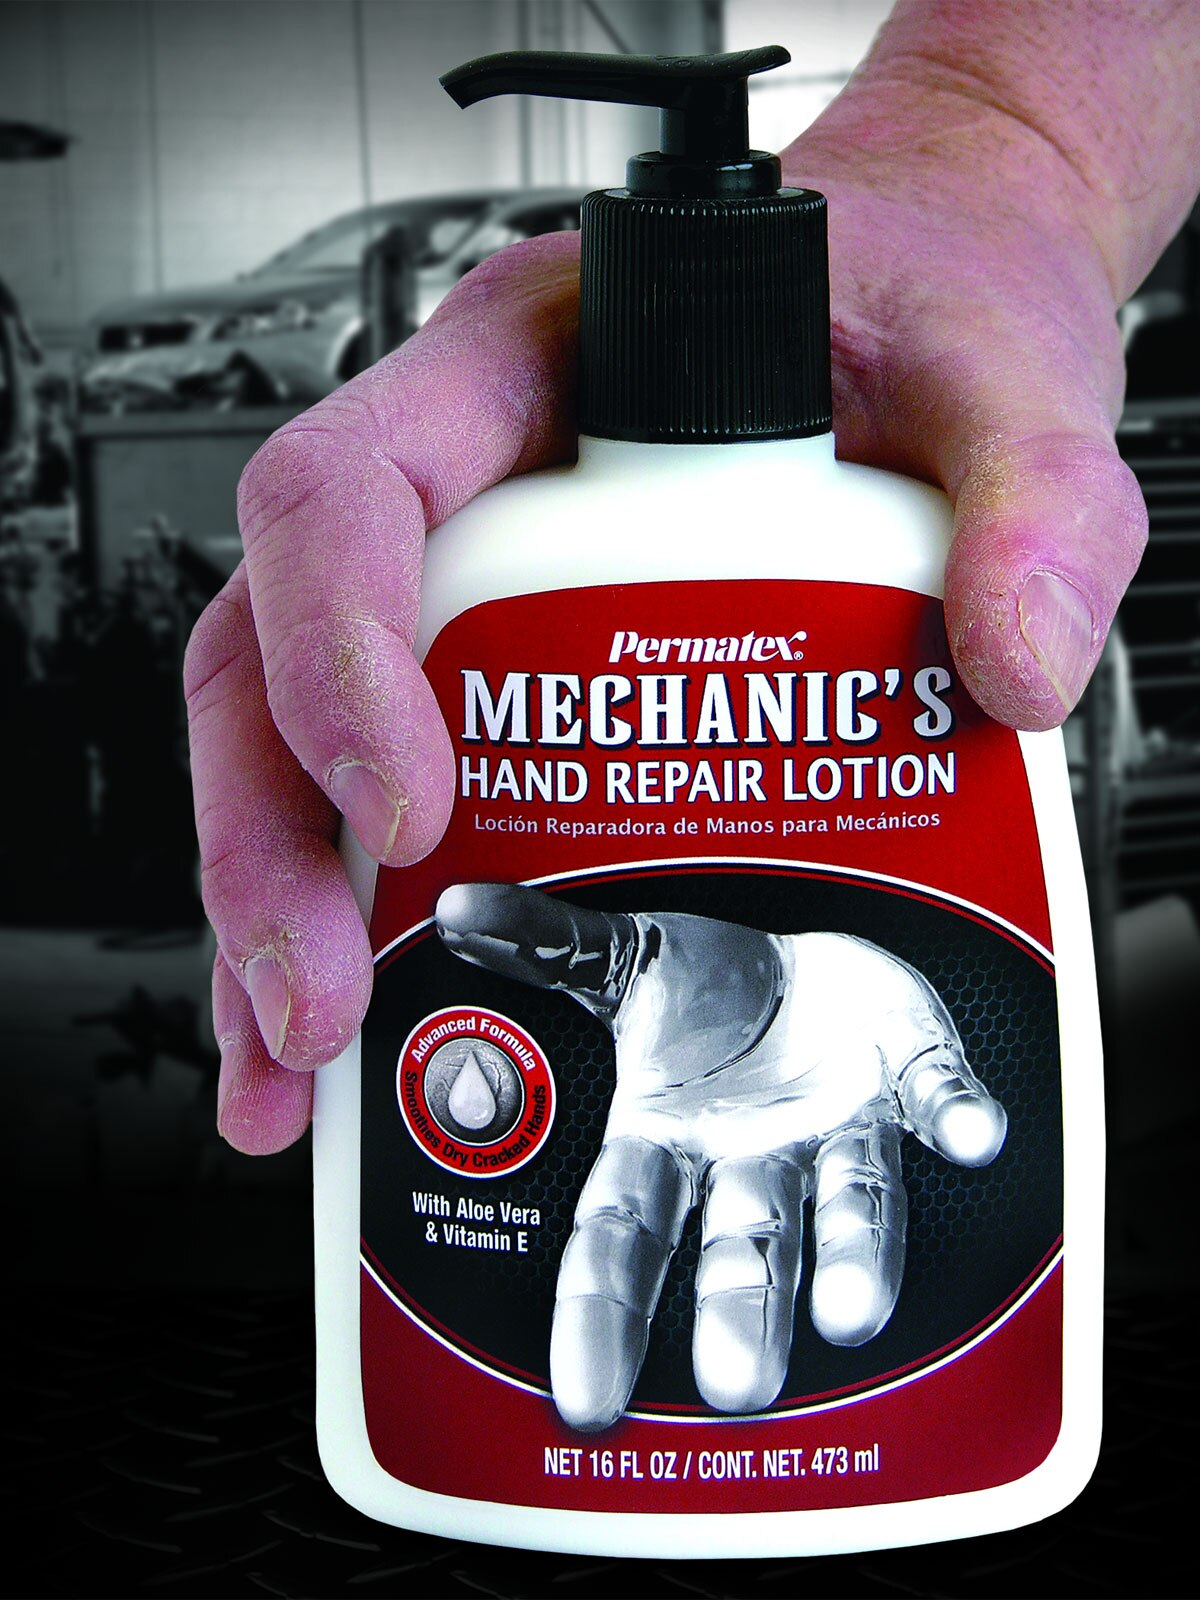 Permatex Mechanic's Hand Repair Lotion rejuvenates, soothes, and repairs damage to hard working hands.